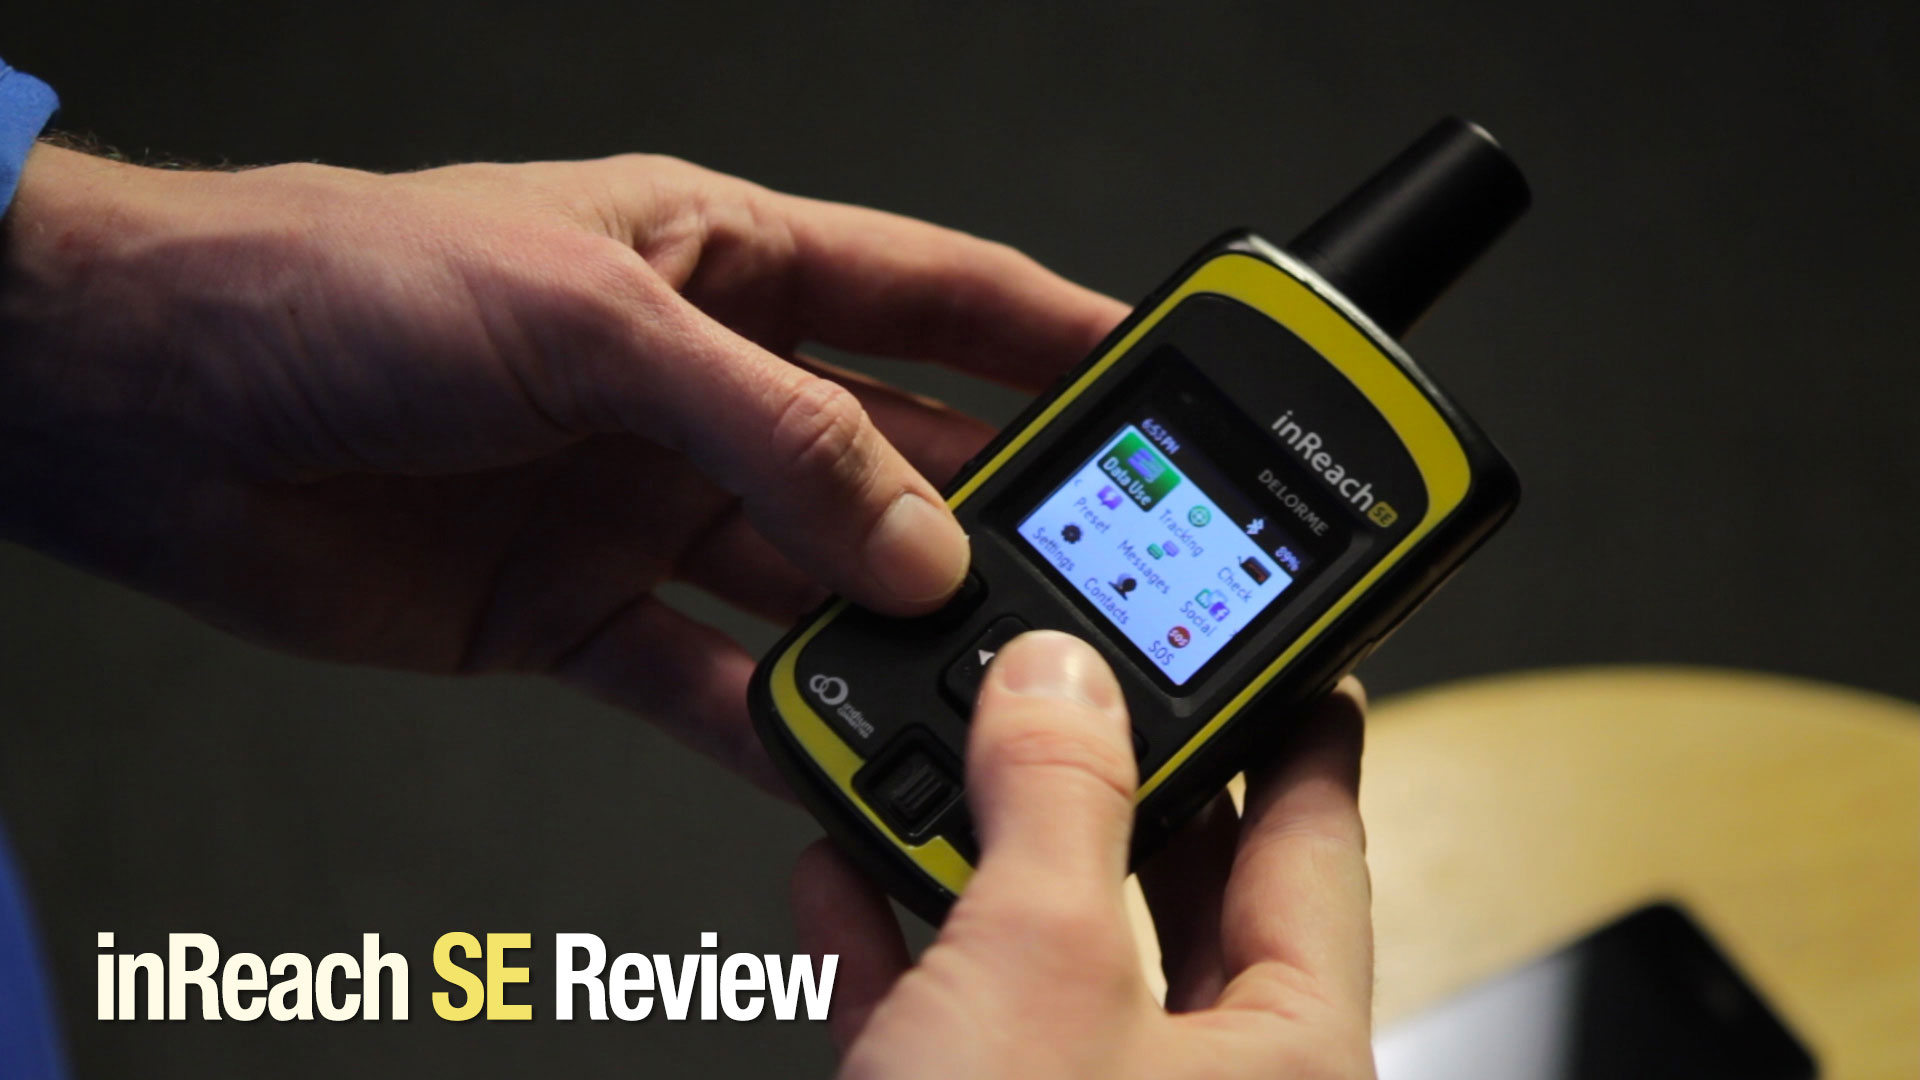 Delorme inReach SE Review